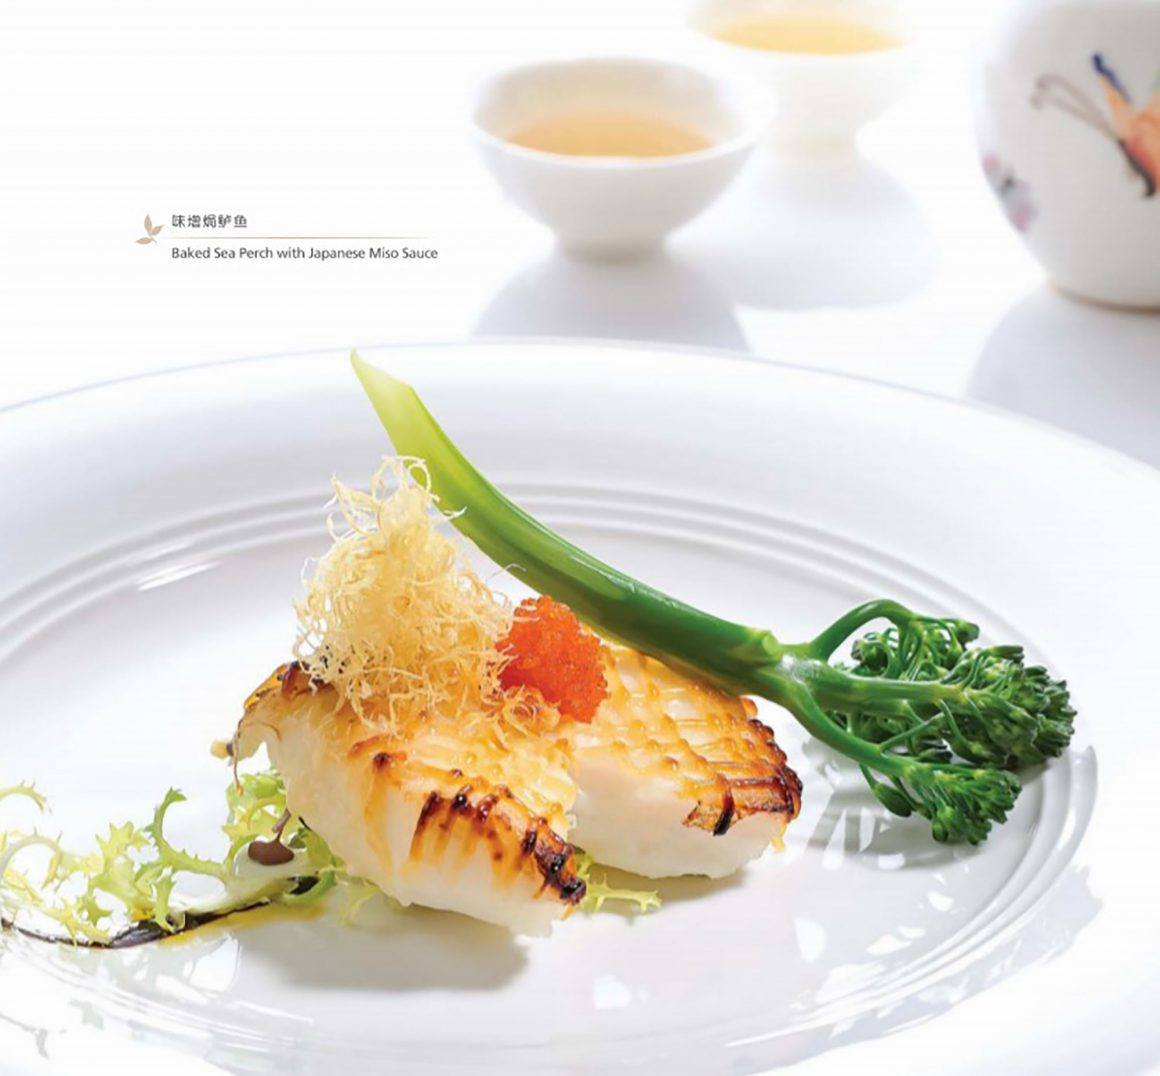 Baked-Sea-Perch-with-Japanese-Miso-Sauce